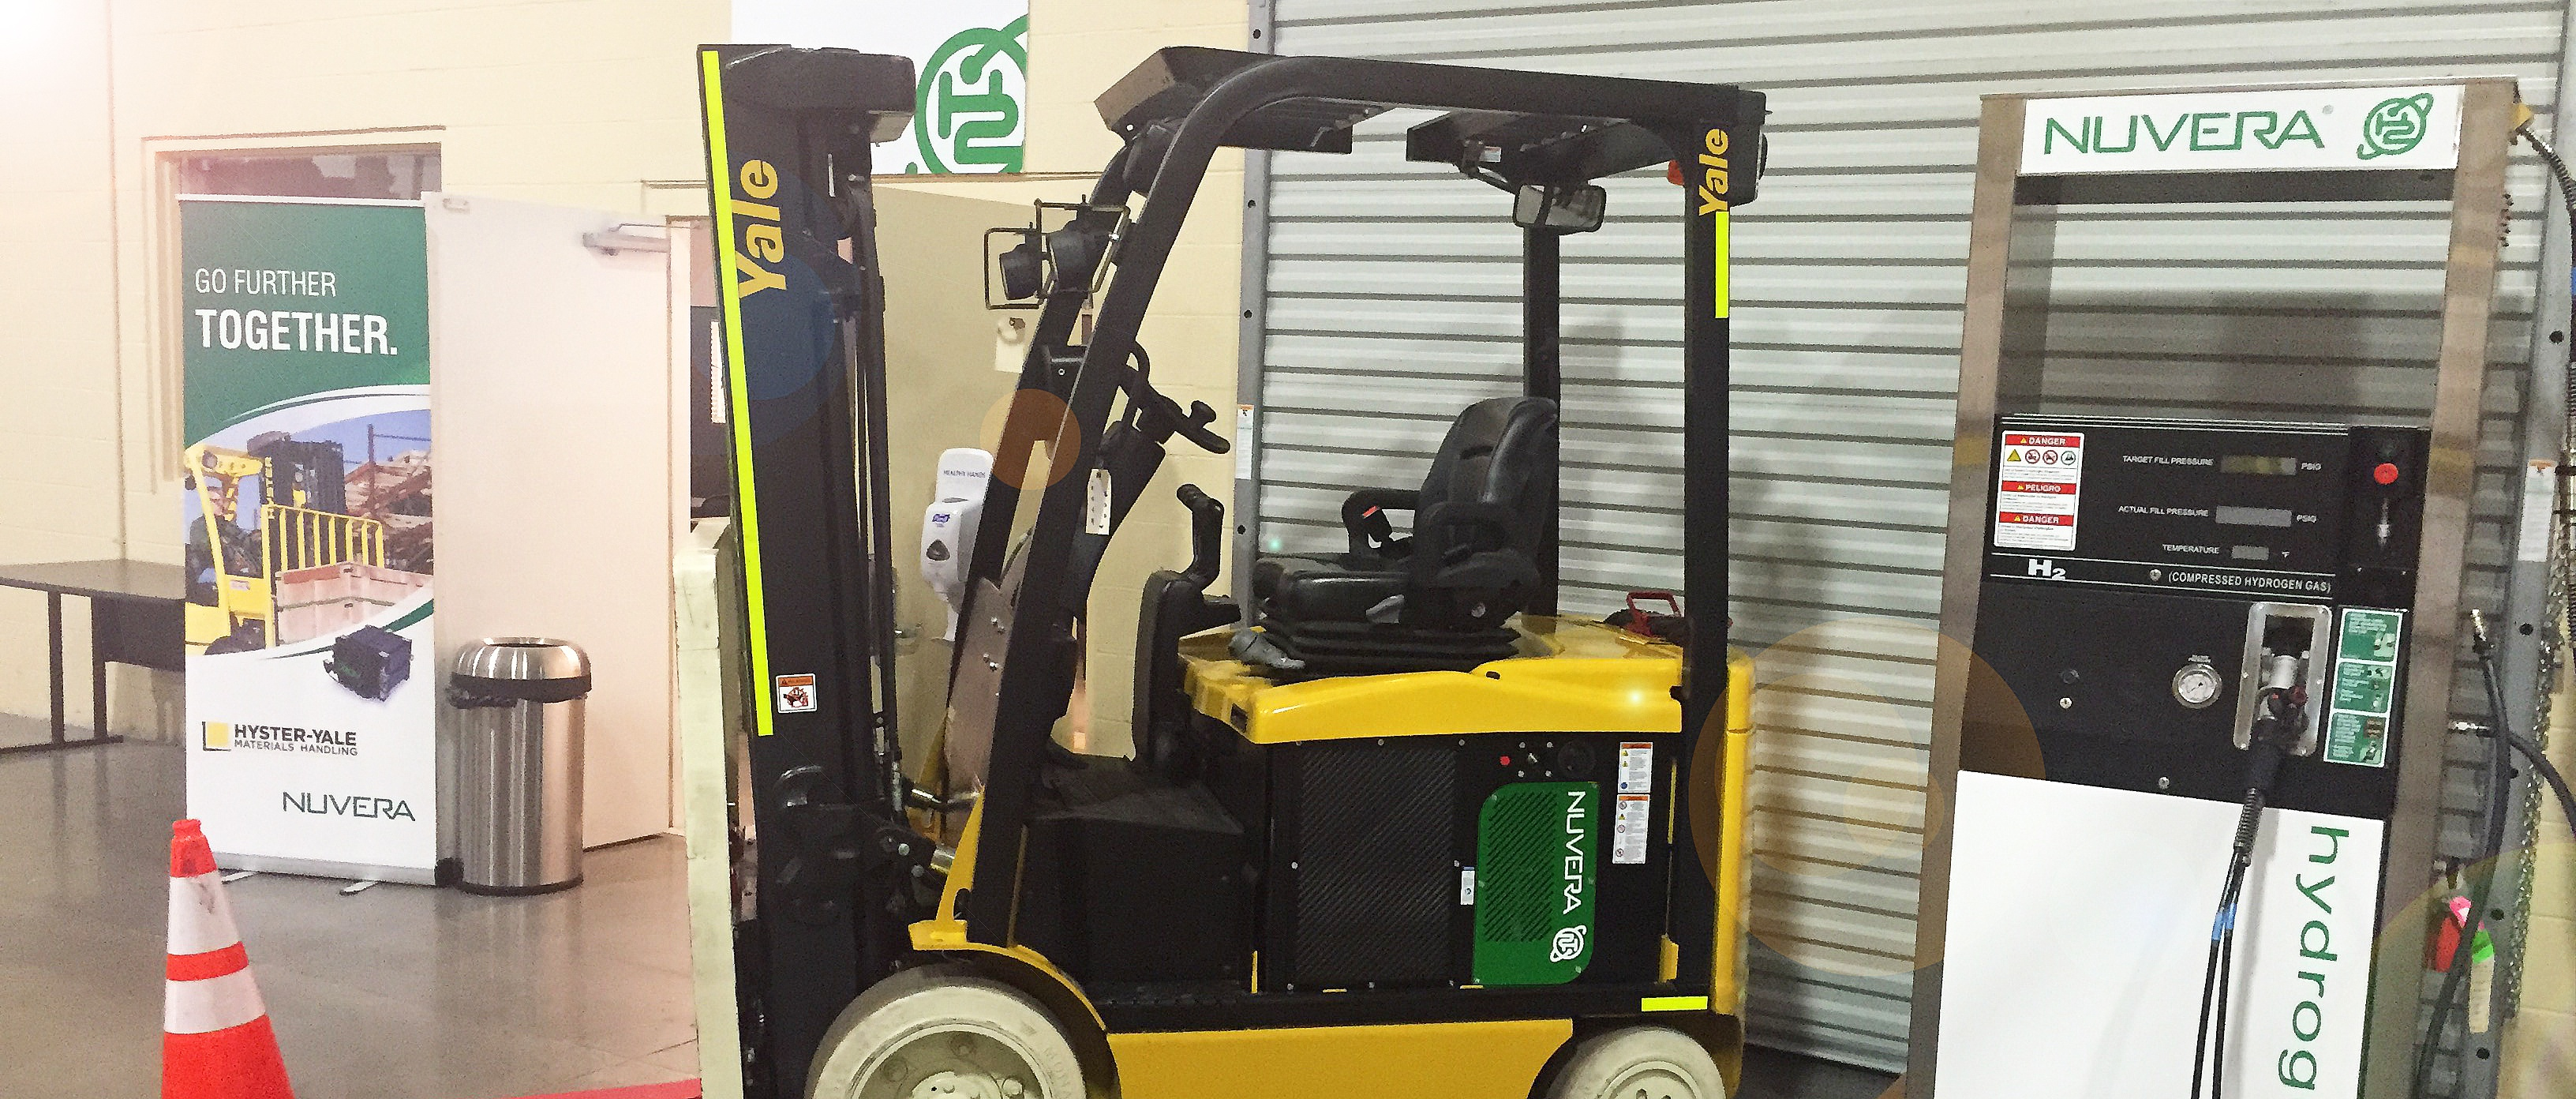 LiftOne Showcases Nuvera® All-In Fuel Cell Solutions at Hyster-Yale Experience Center